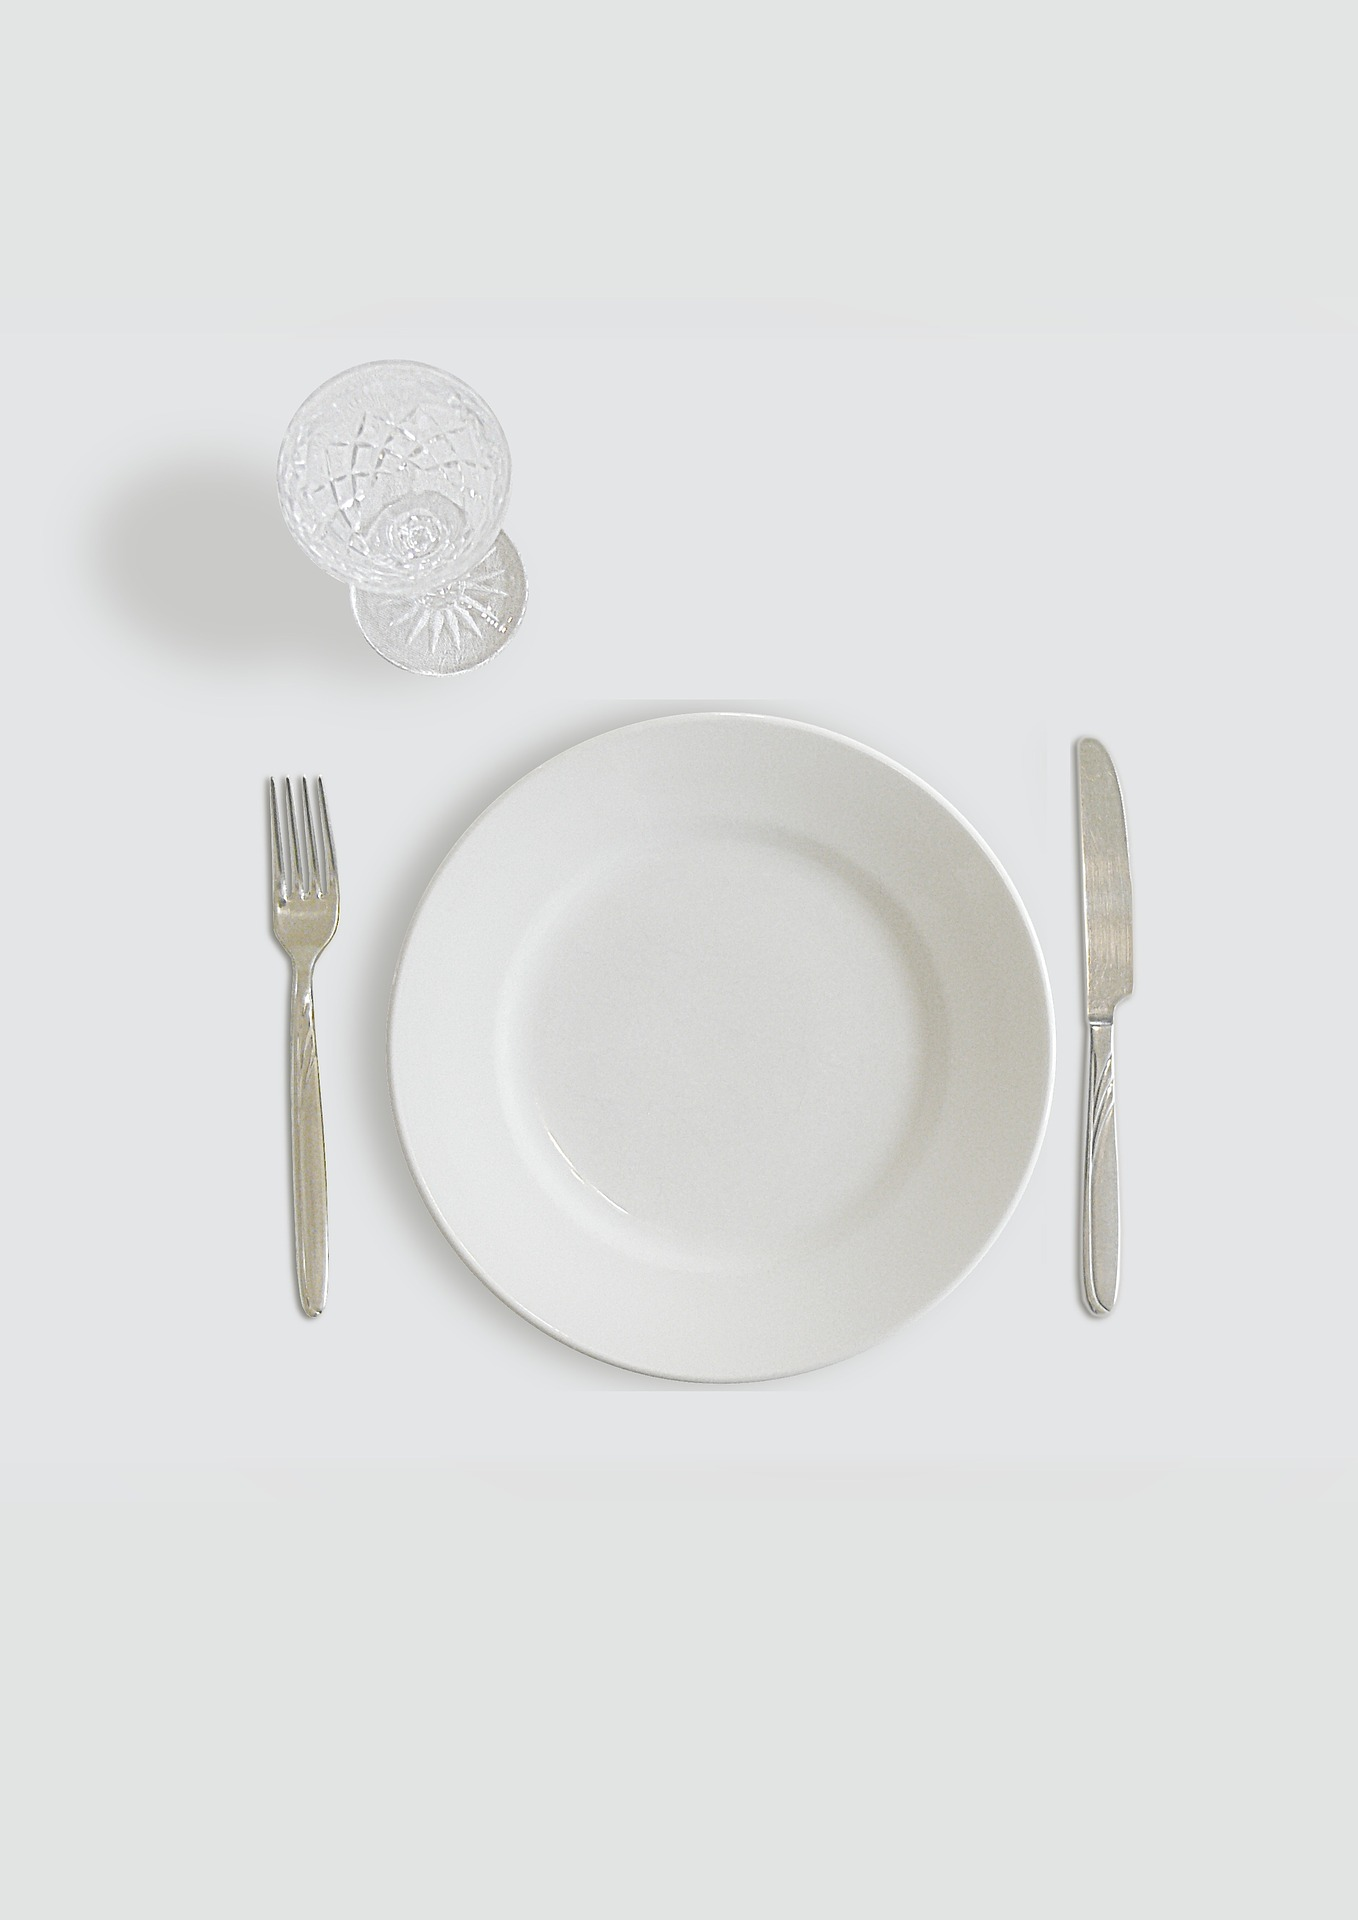 Behaviours For Successful Weight Loss During Alternate-Day Fasting